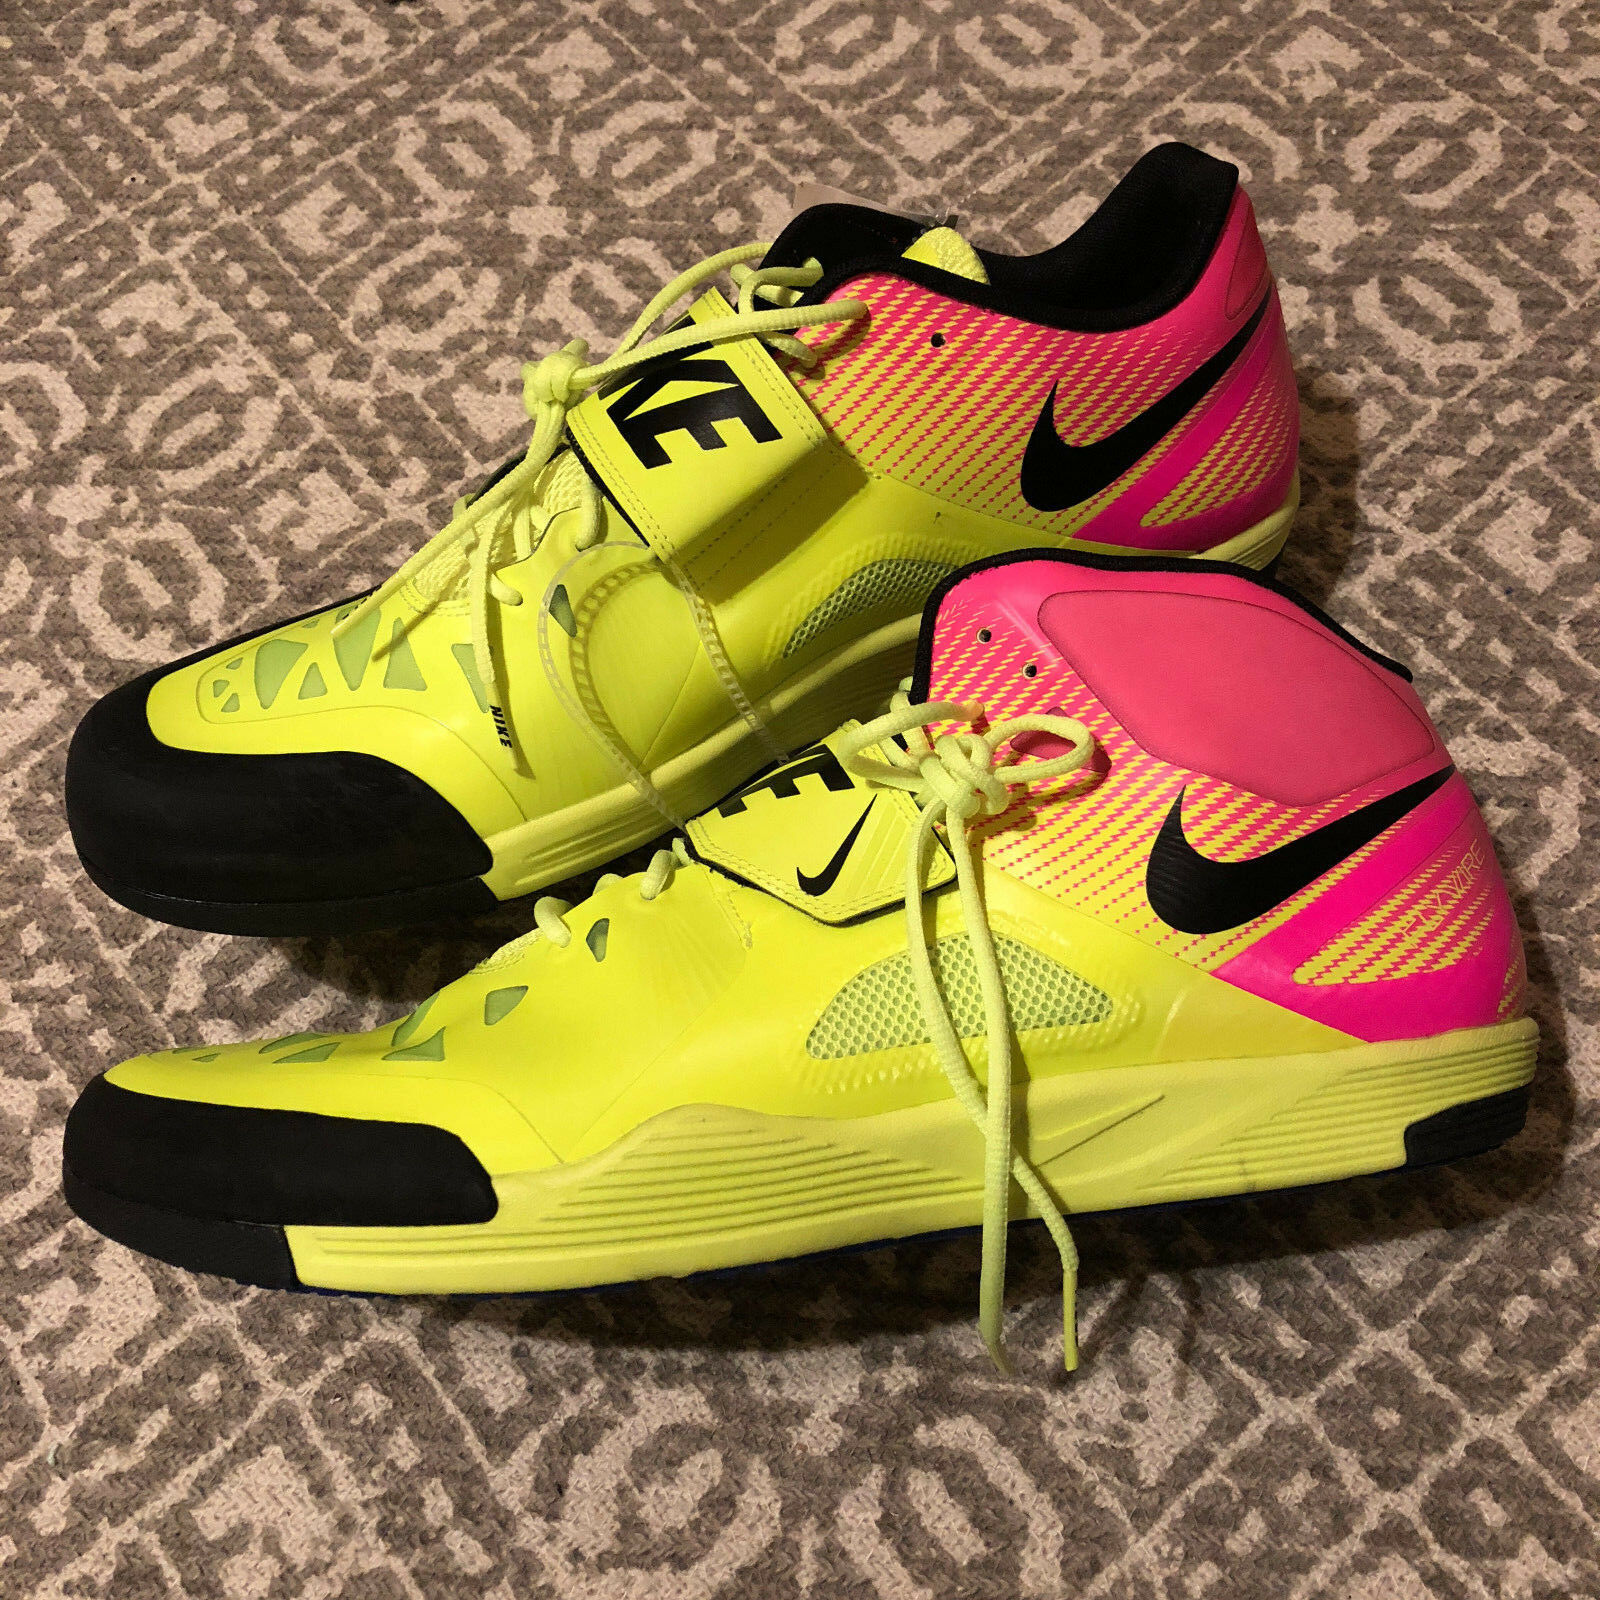 NIKE ZOOM JAVELIN ELITE 2 SIZE 15 MENS SHOES TRACK & FIELD THROWING SHOES MENS 631055-999 a6906a